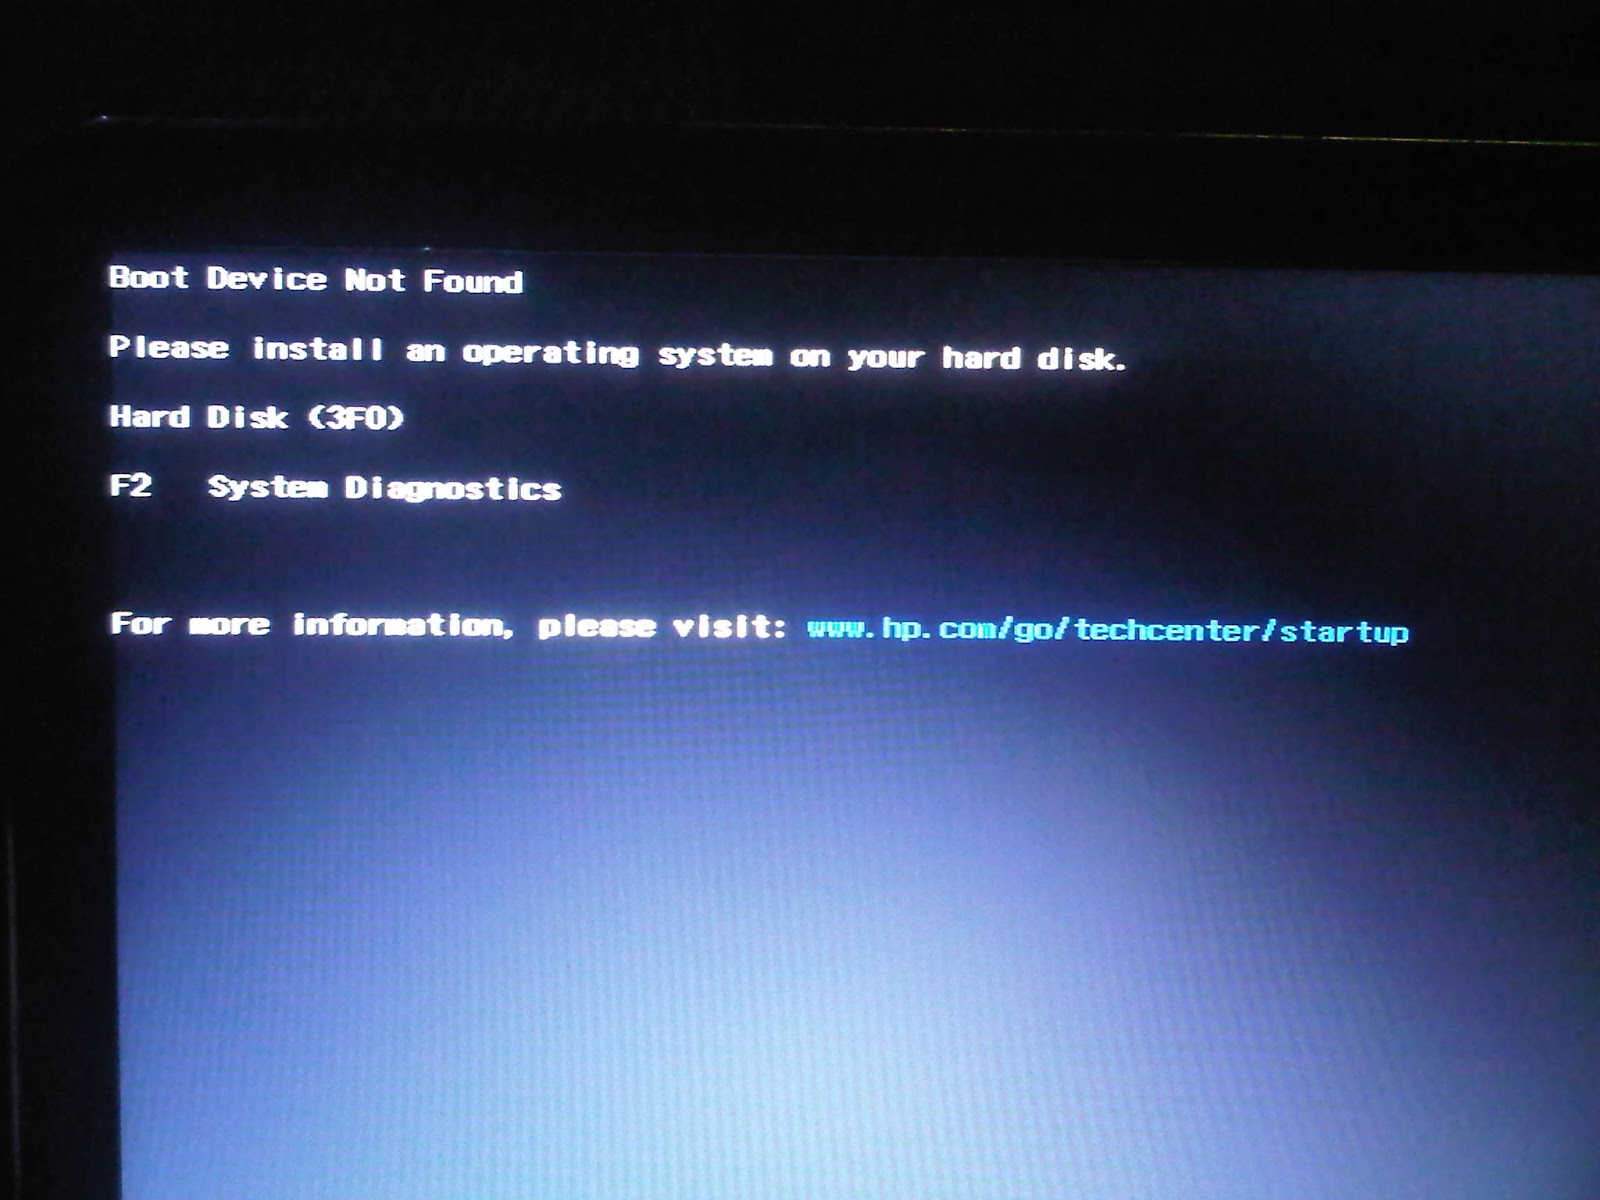 Hp notebook operating system - Sata 2 5 Ssd With M 2 Ssd On Hp Probook 440 G3 Hp Support Forum 5825155